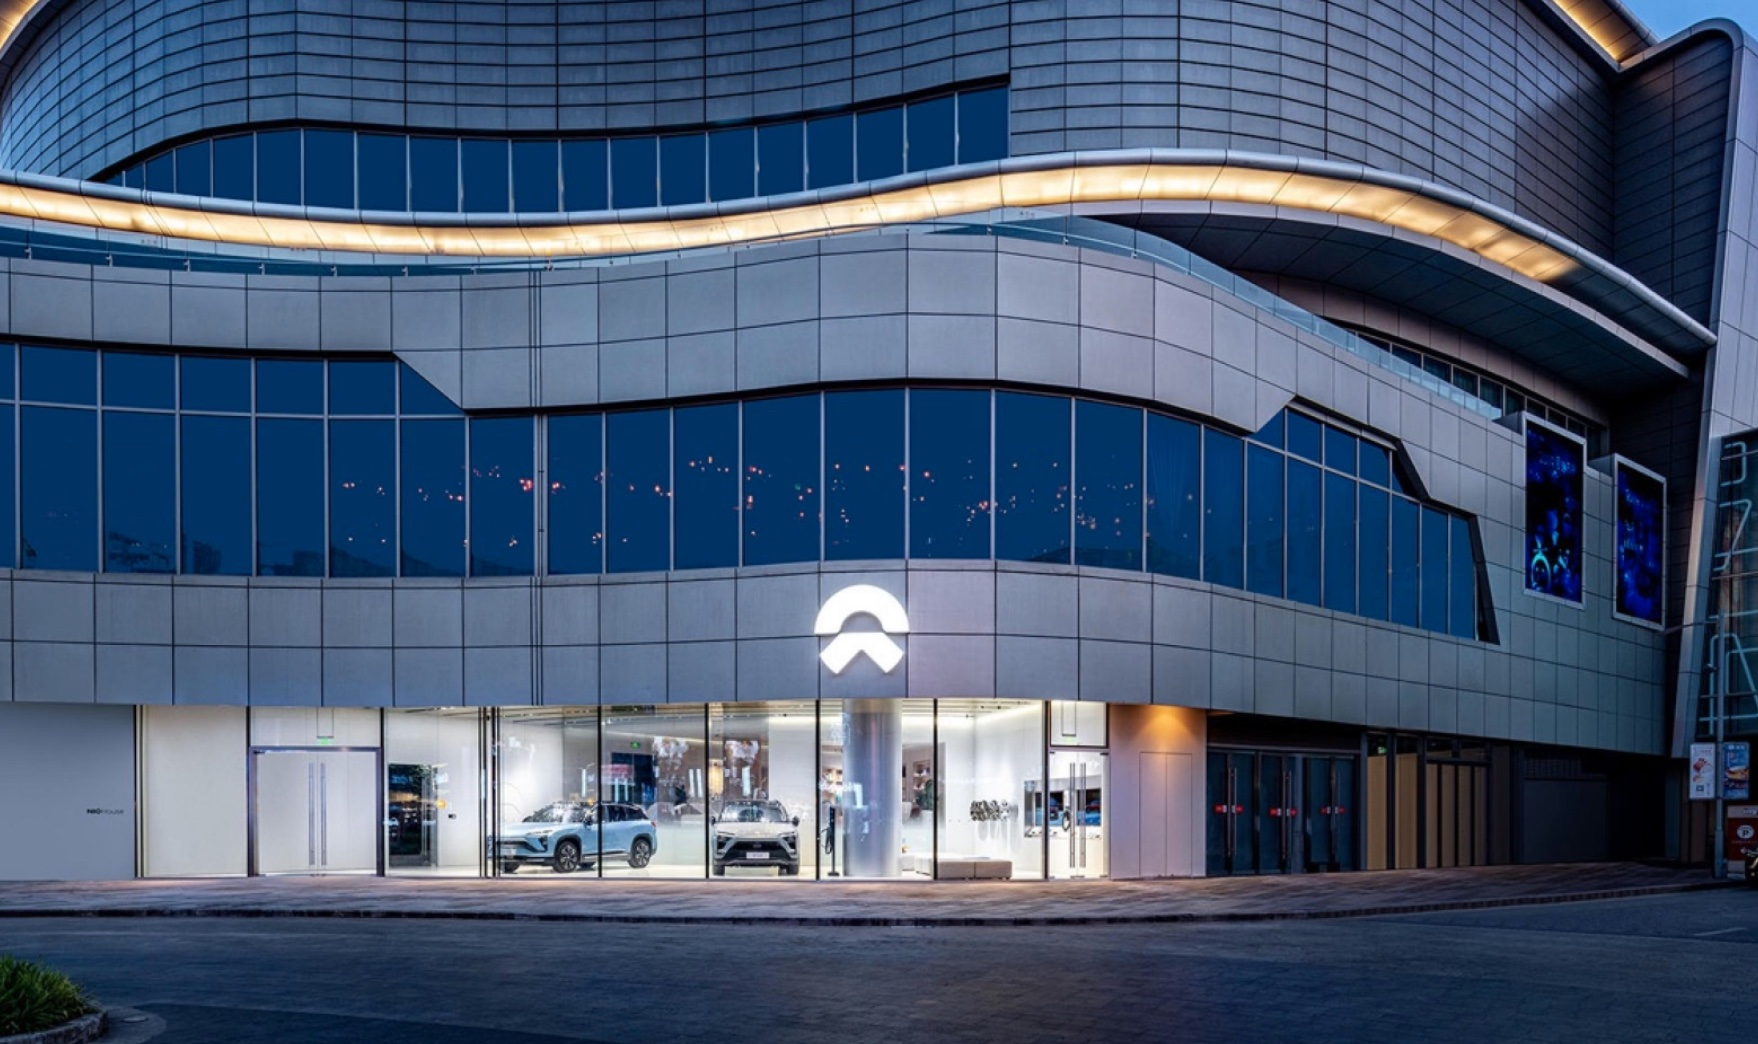 With over $3.6 billion in funding this year, how will NIO spend that money?-cnTechPost